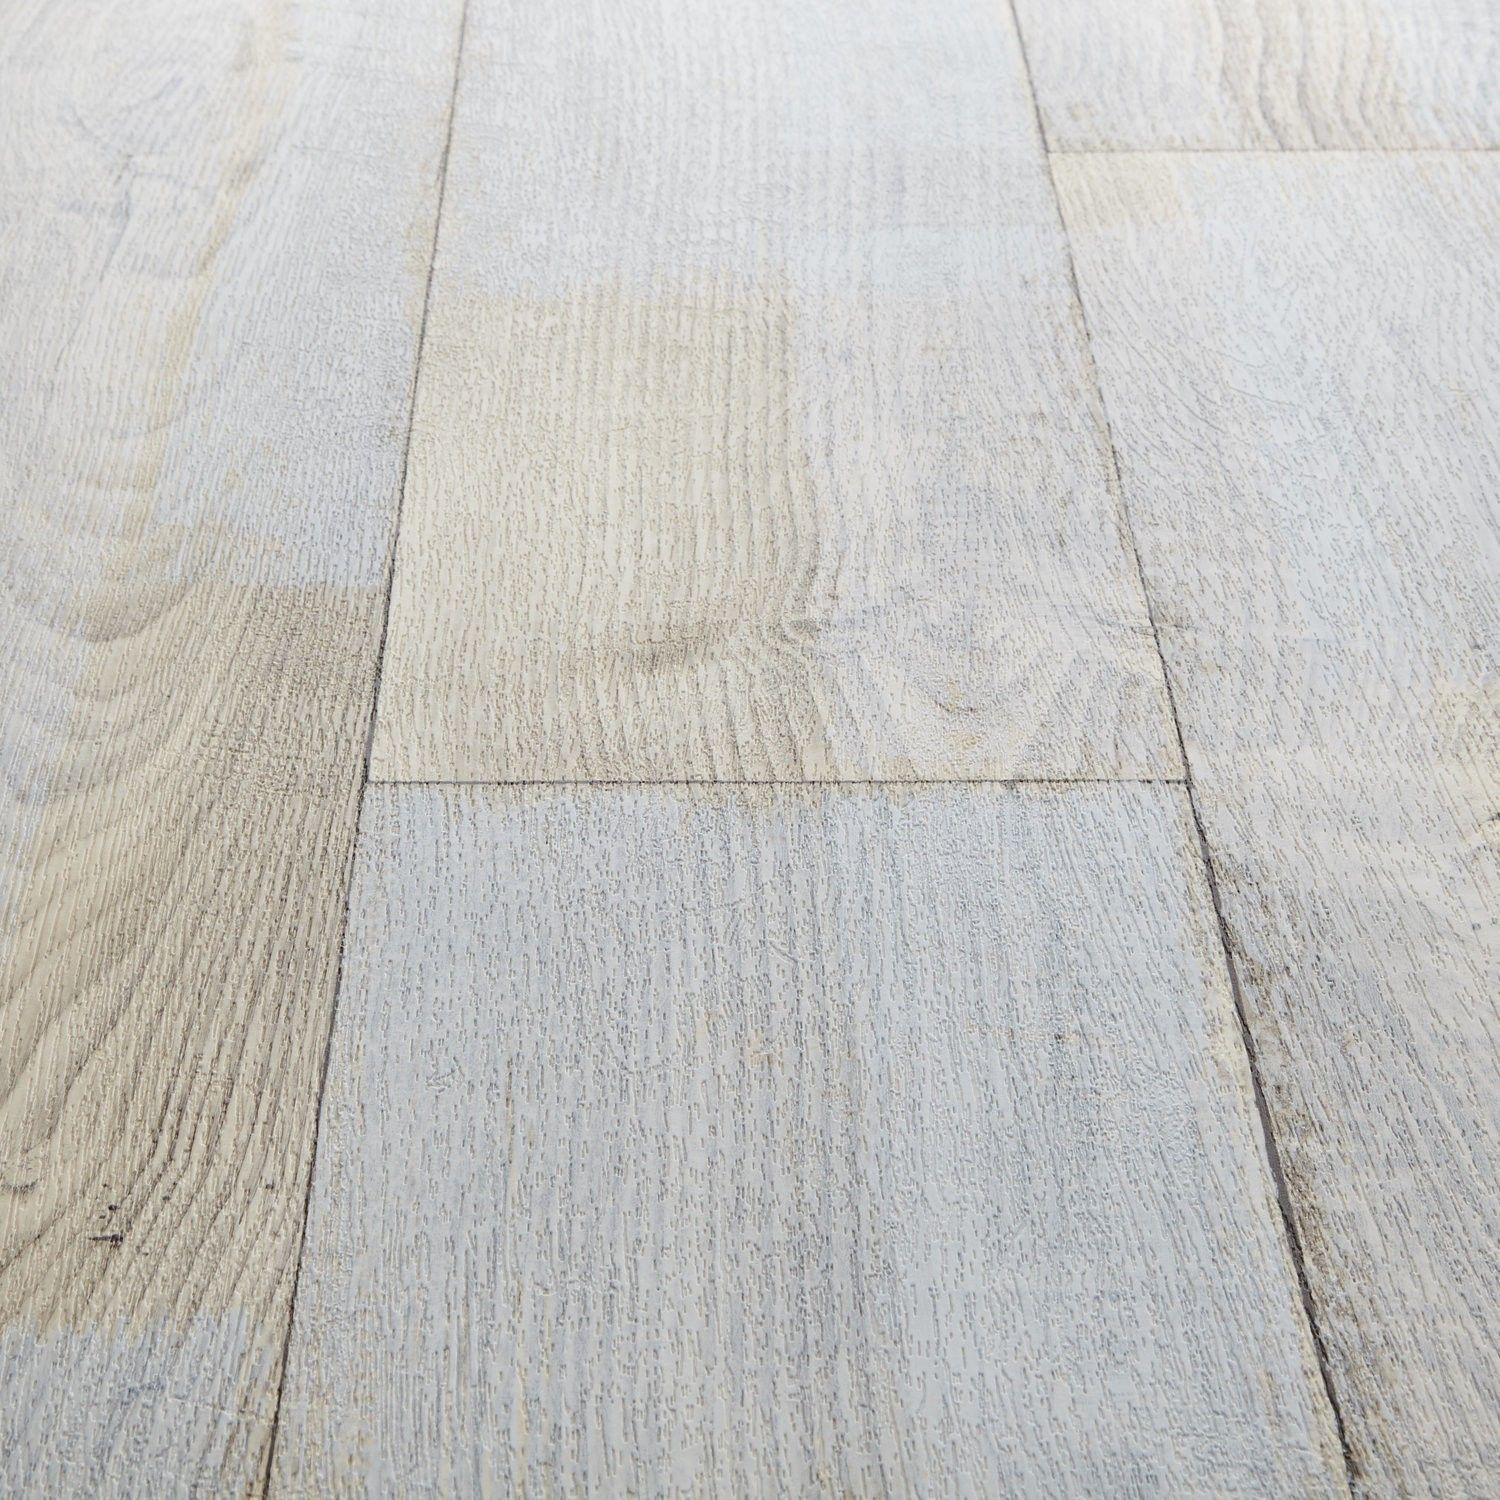 Wood Effect Laminate Flooring For Bathrooms: Rhino Style Patched White Wood Effect Vinyl Flooring